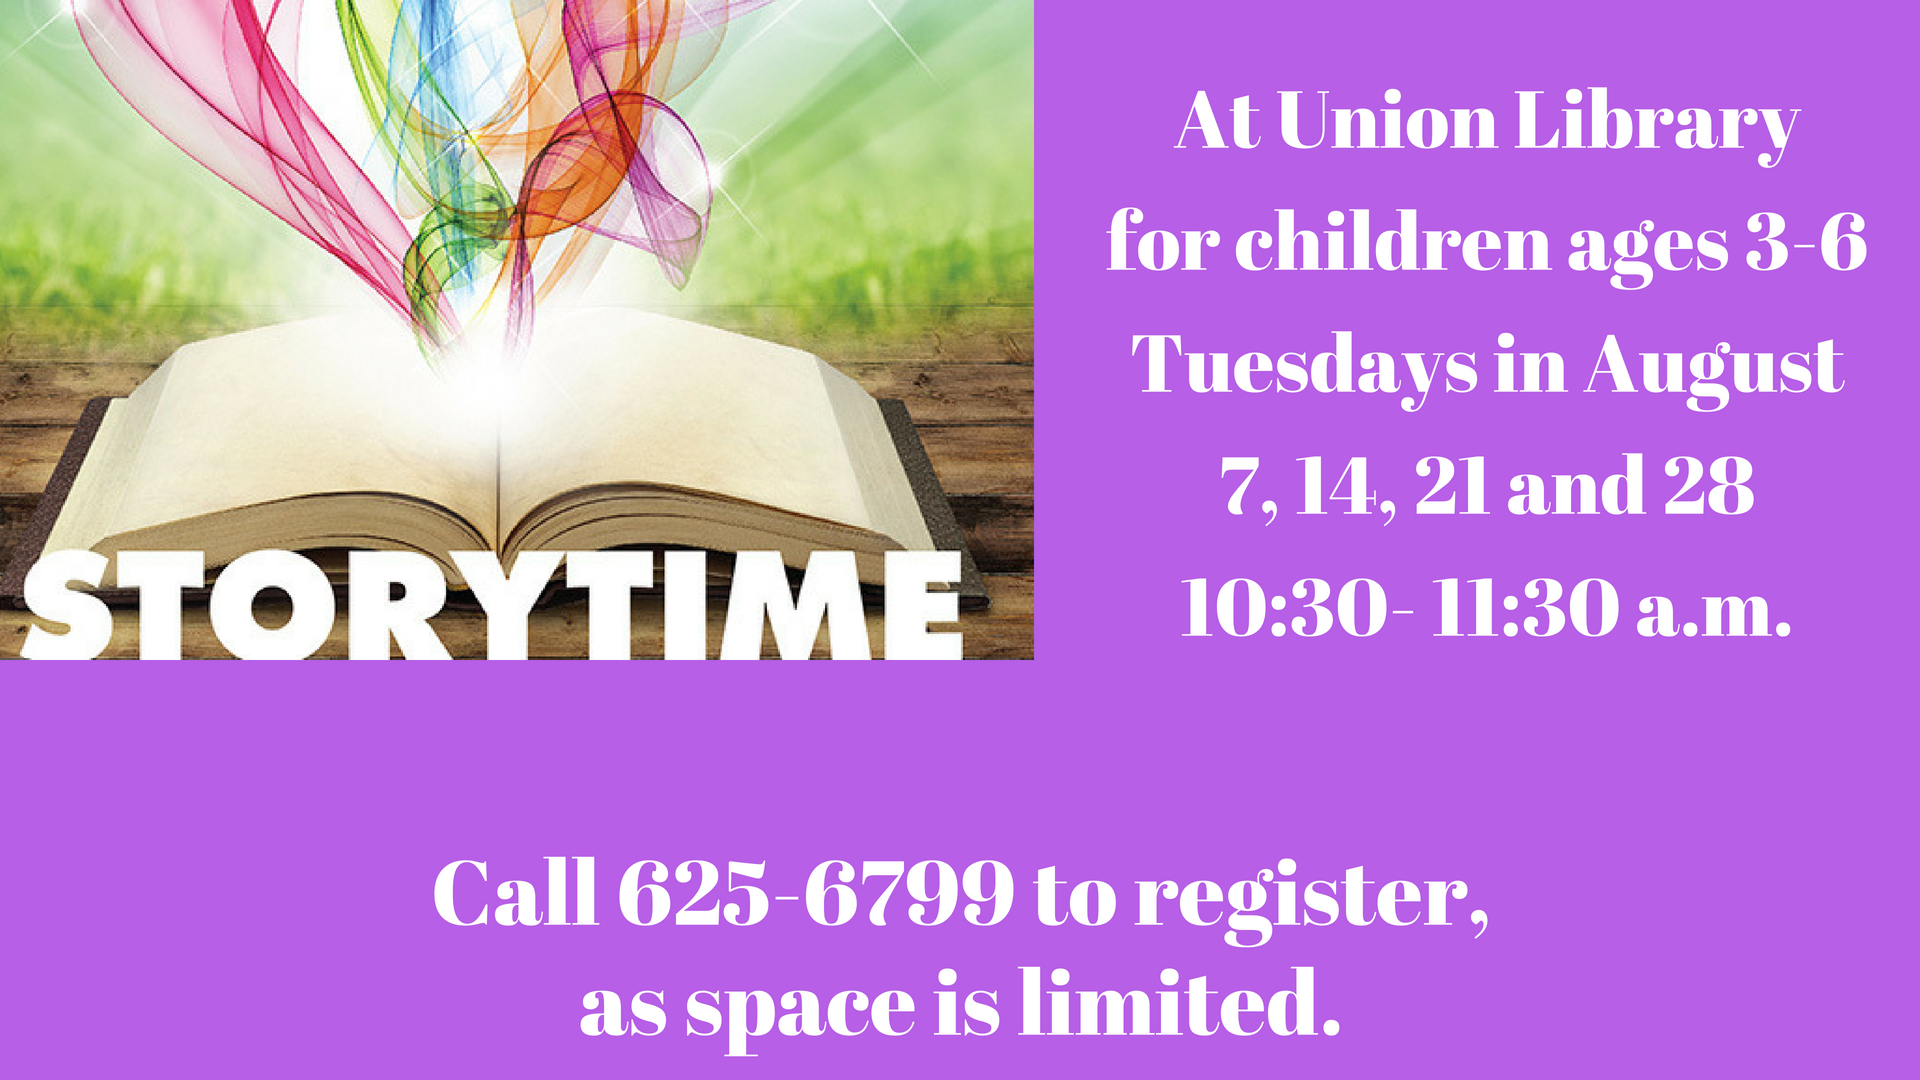 Storytime at Union Public Library